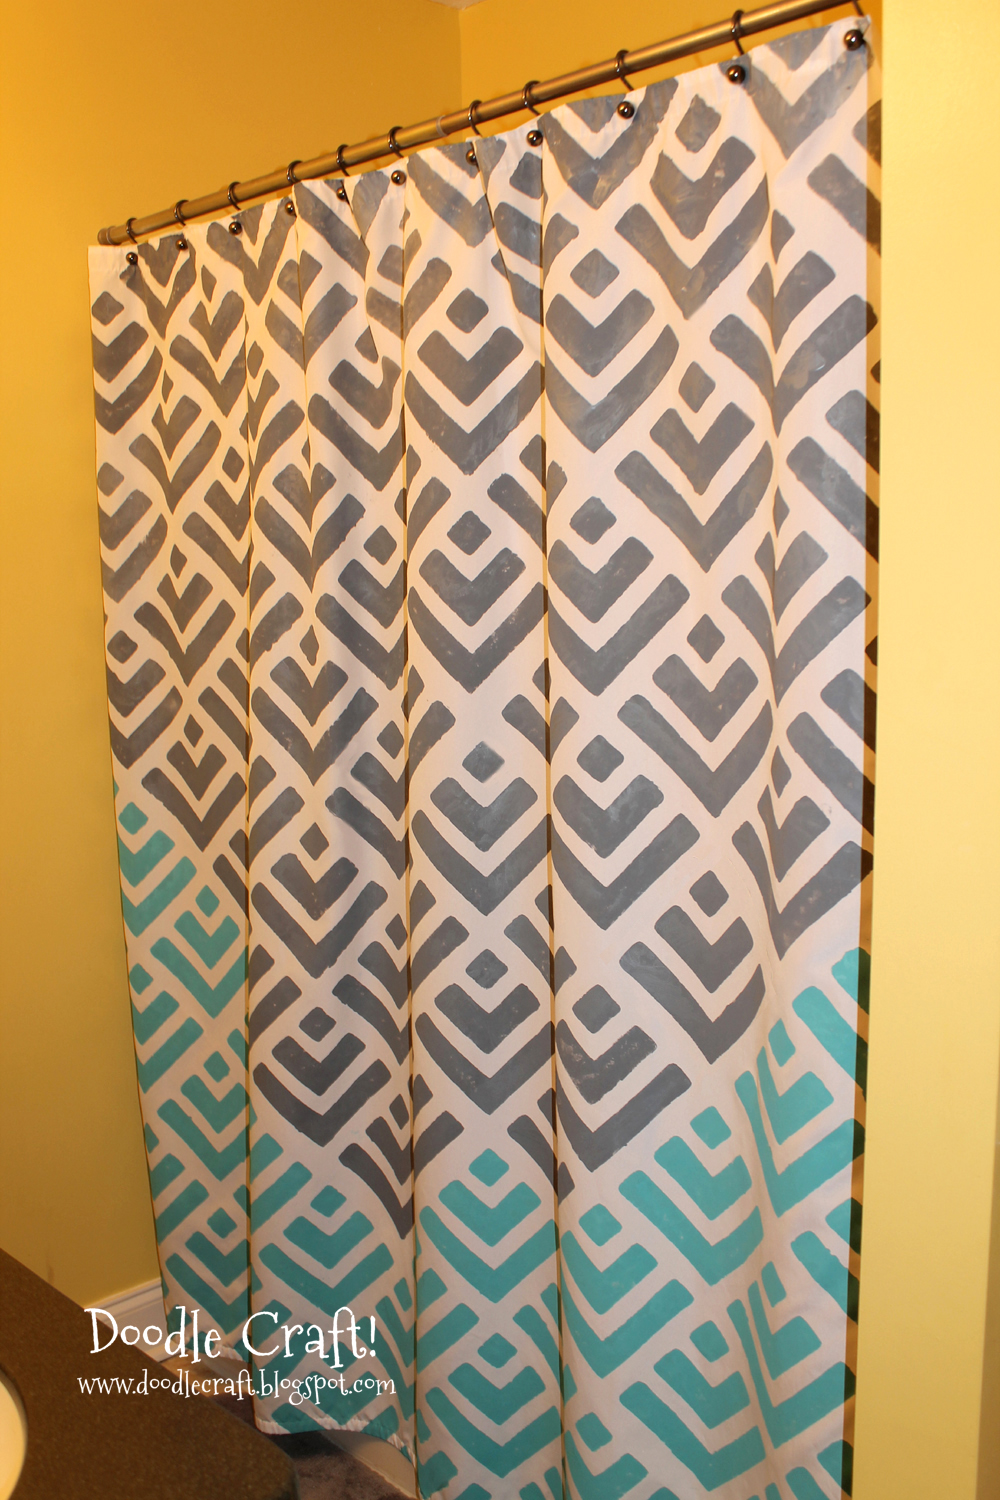 Doodlecraft Stencil A Shower Curtain With Cutting Edge Stencils And Give Away